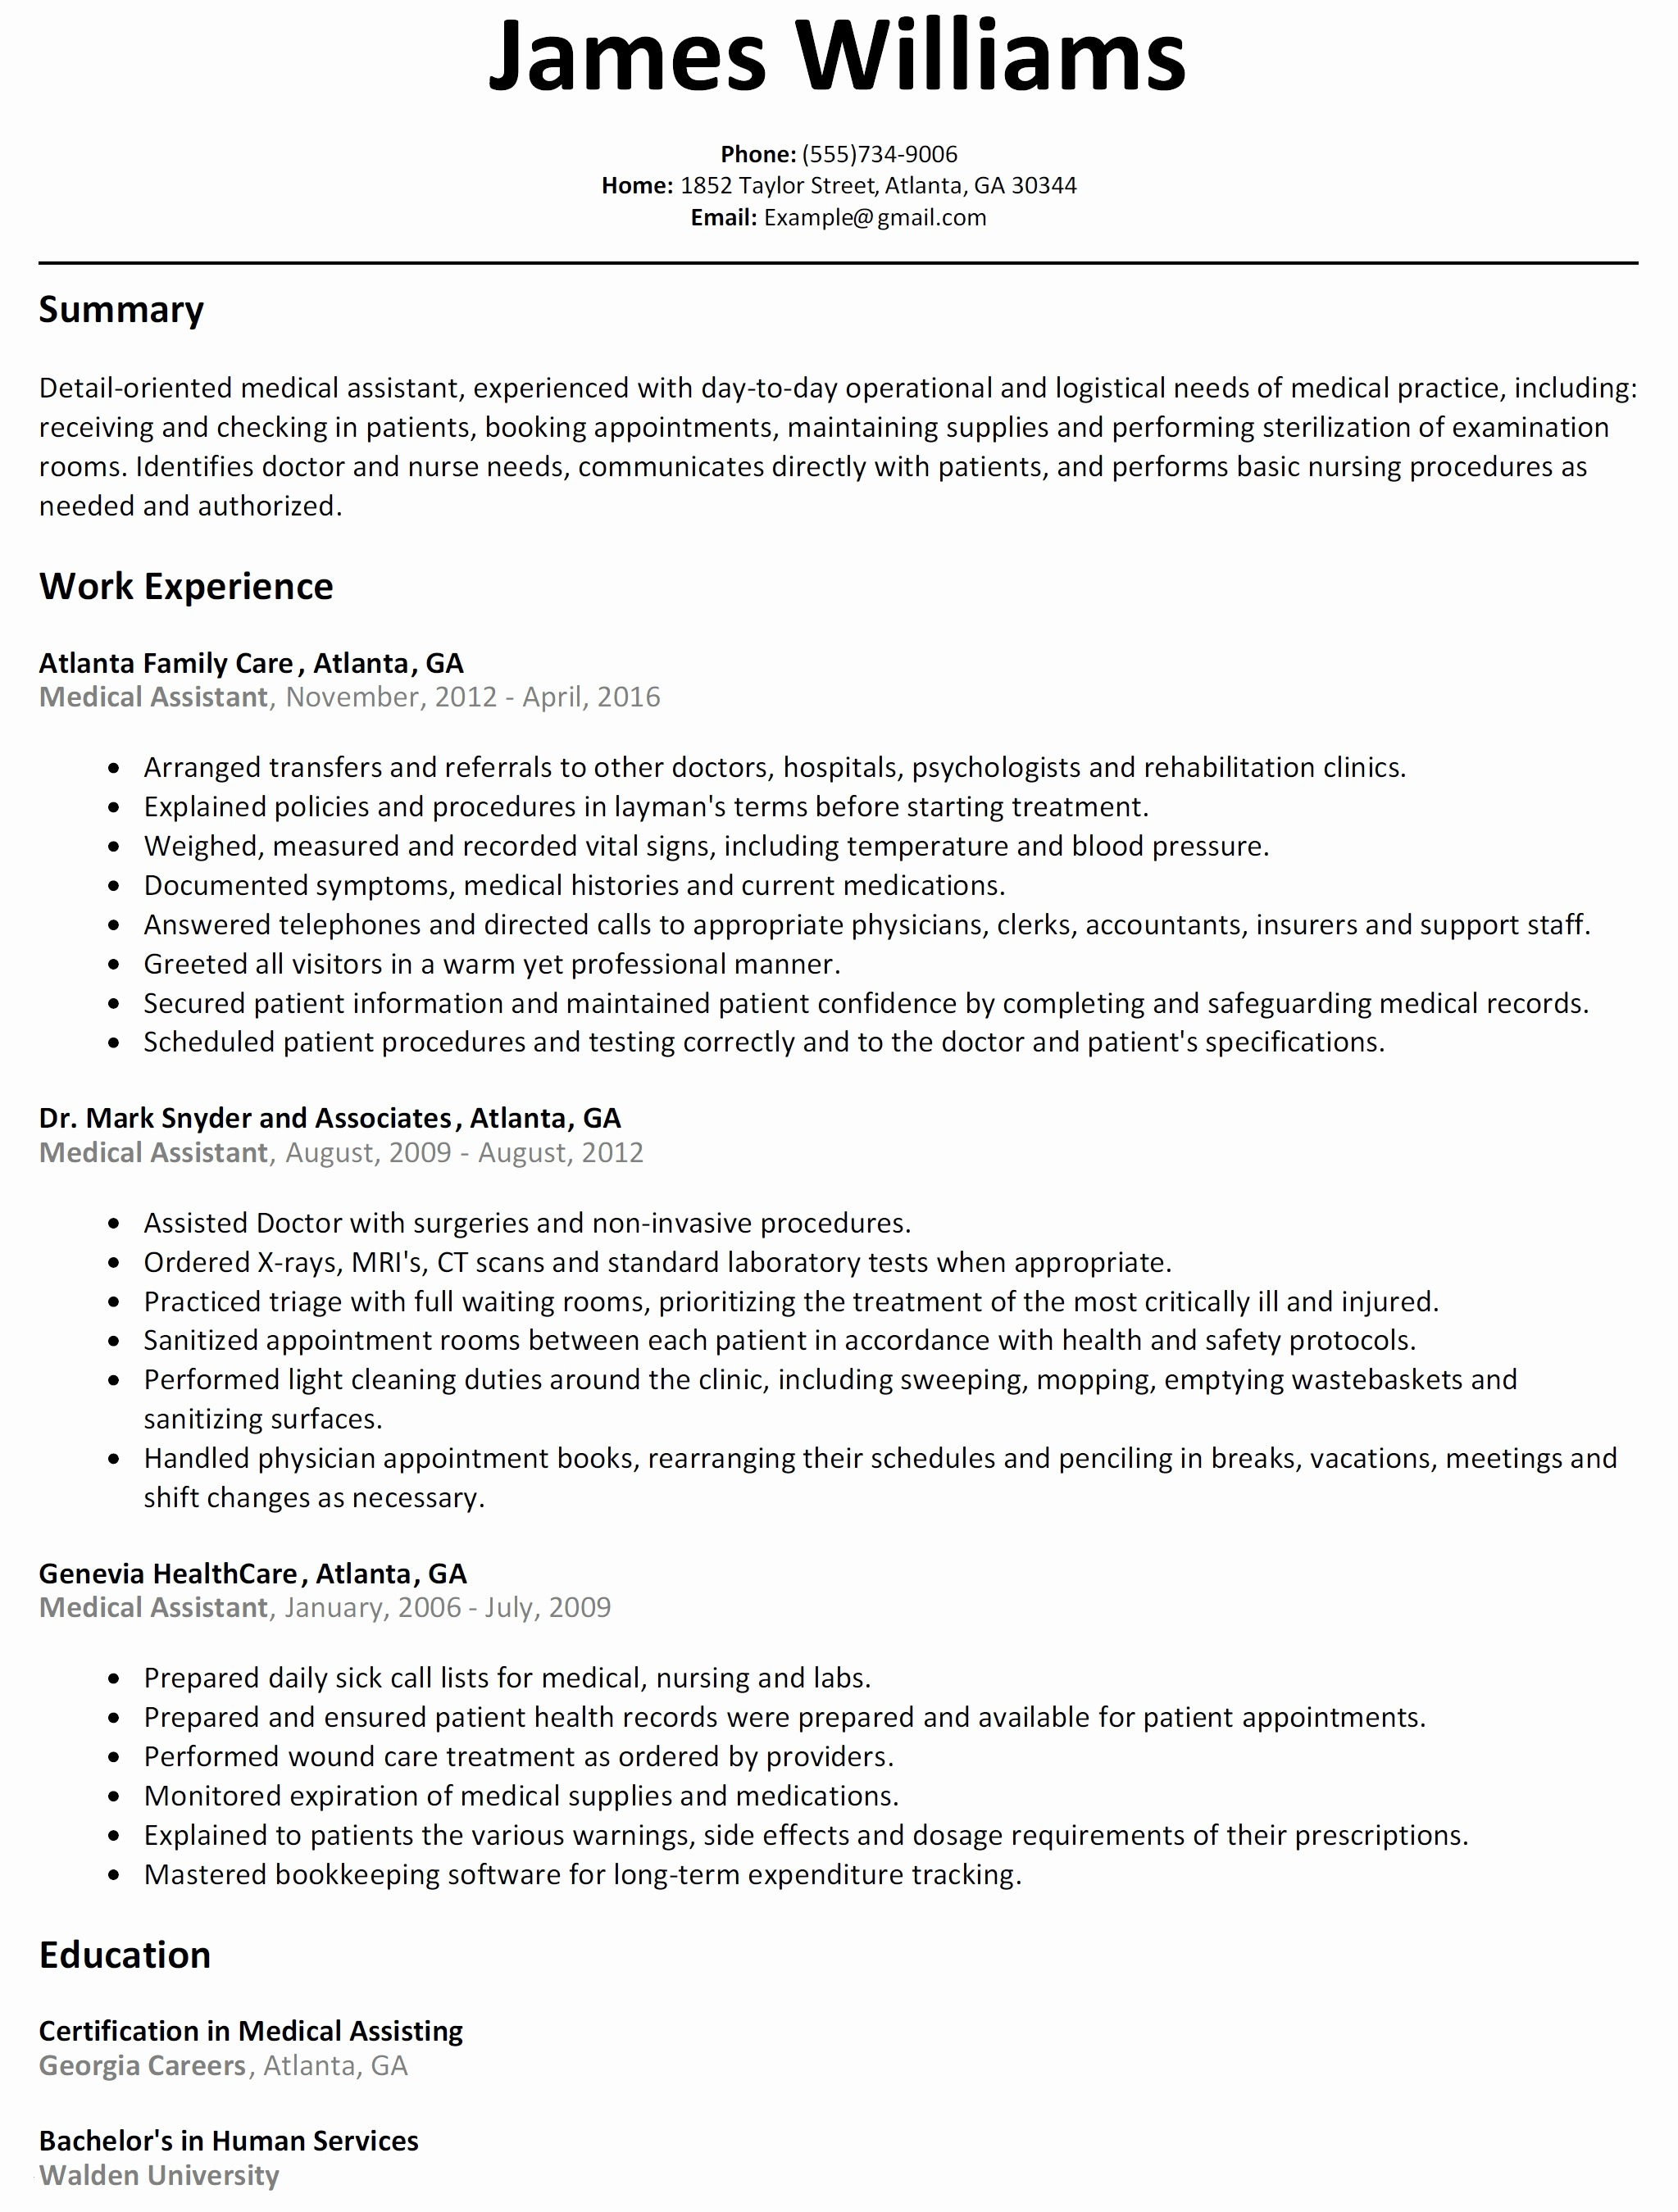 Nurse Practitioner Resume Examples - Call Center Resume Template New Resume Examples Customer Service